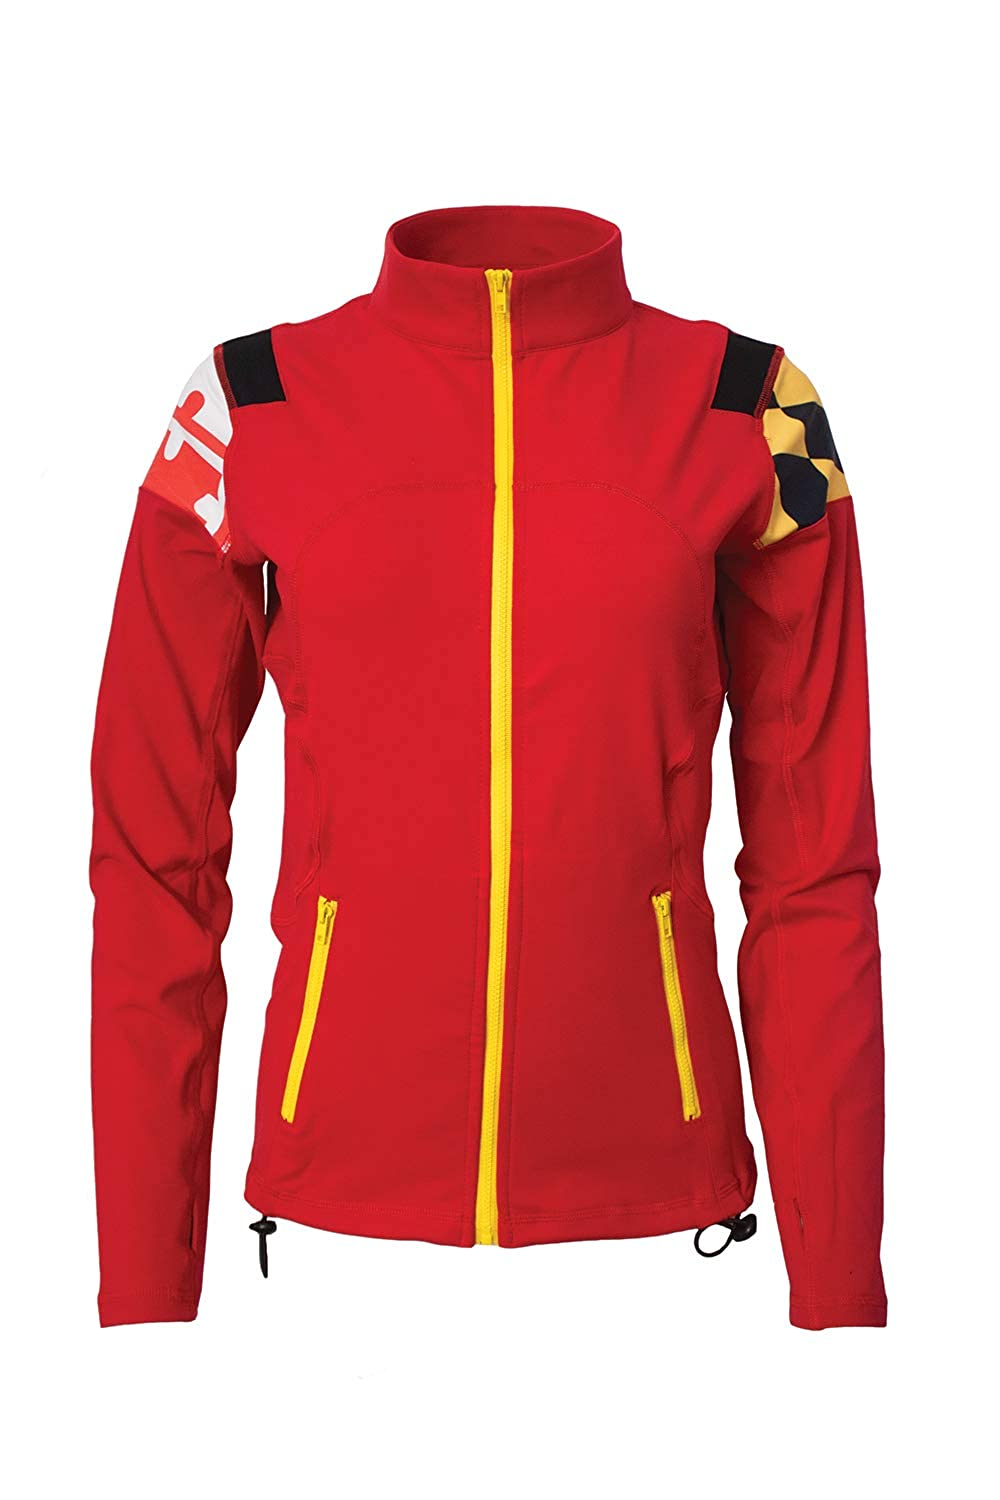 Twin Vision Activewear Maryland Flag Womens Yoga Track ...